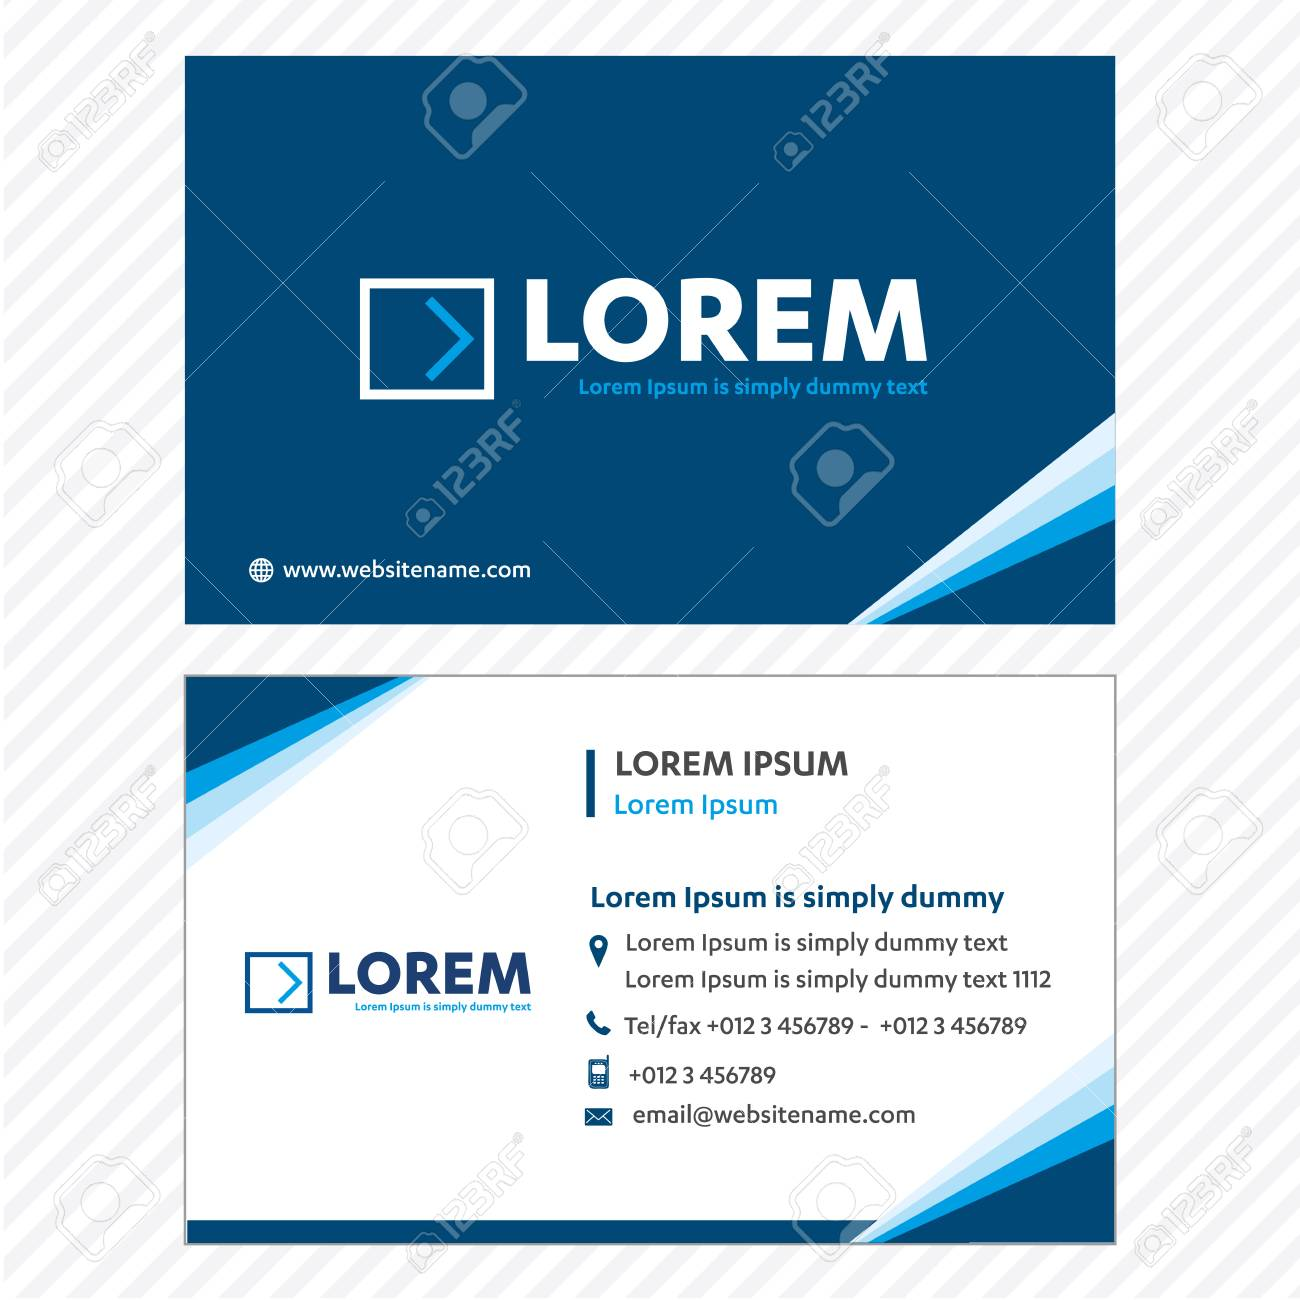 Business card vector template tech logo link network visiting business card vector template tech logo link network visiting card corporate identity stock vector colourmoves